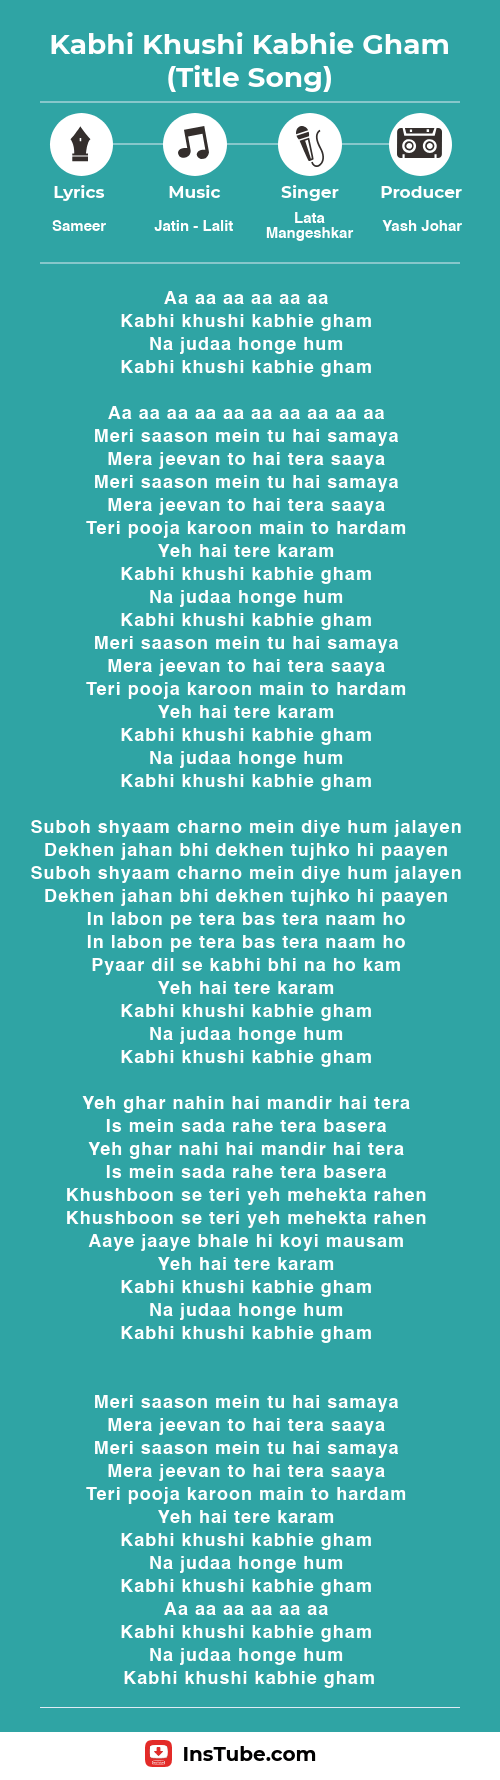 InsTube Kabhi Khushi Kabhi Gham song lyrics